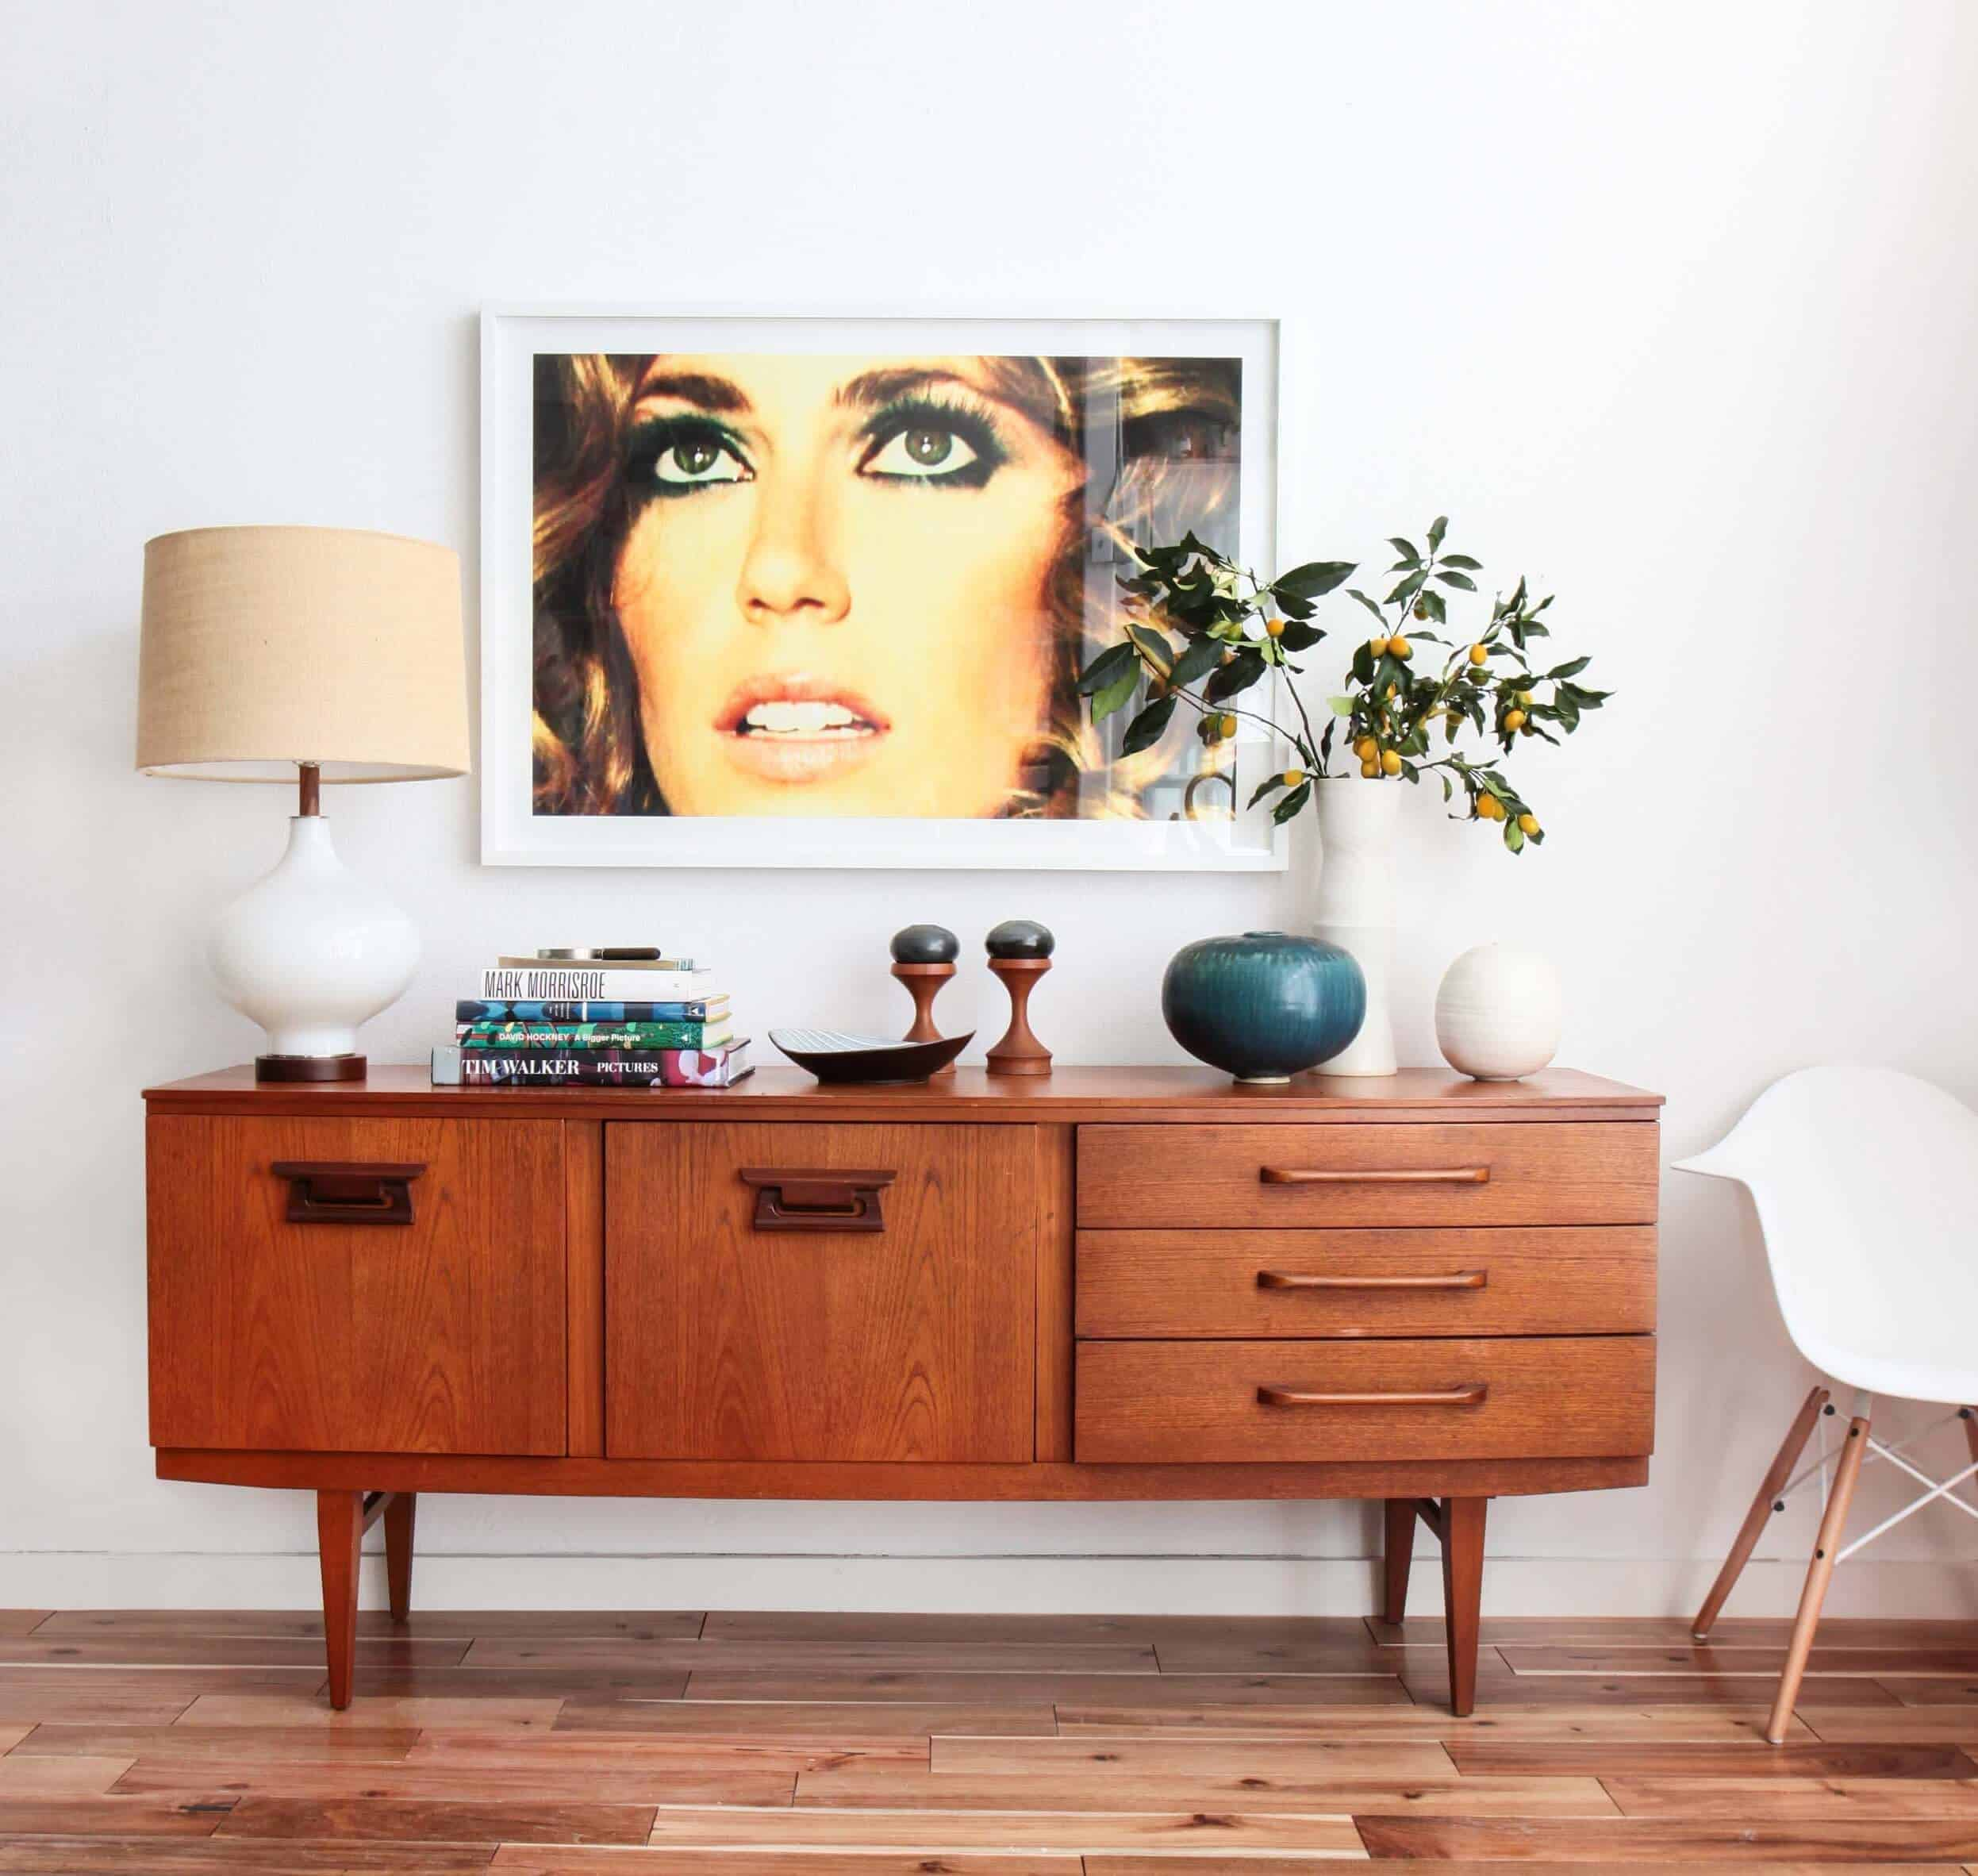 108 Of Our Favorite Credenzas At Every Price Point Emily Henderson